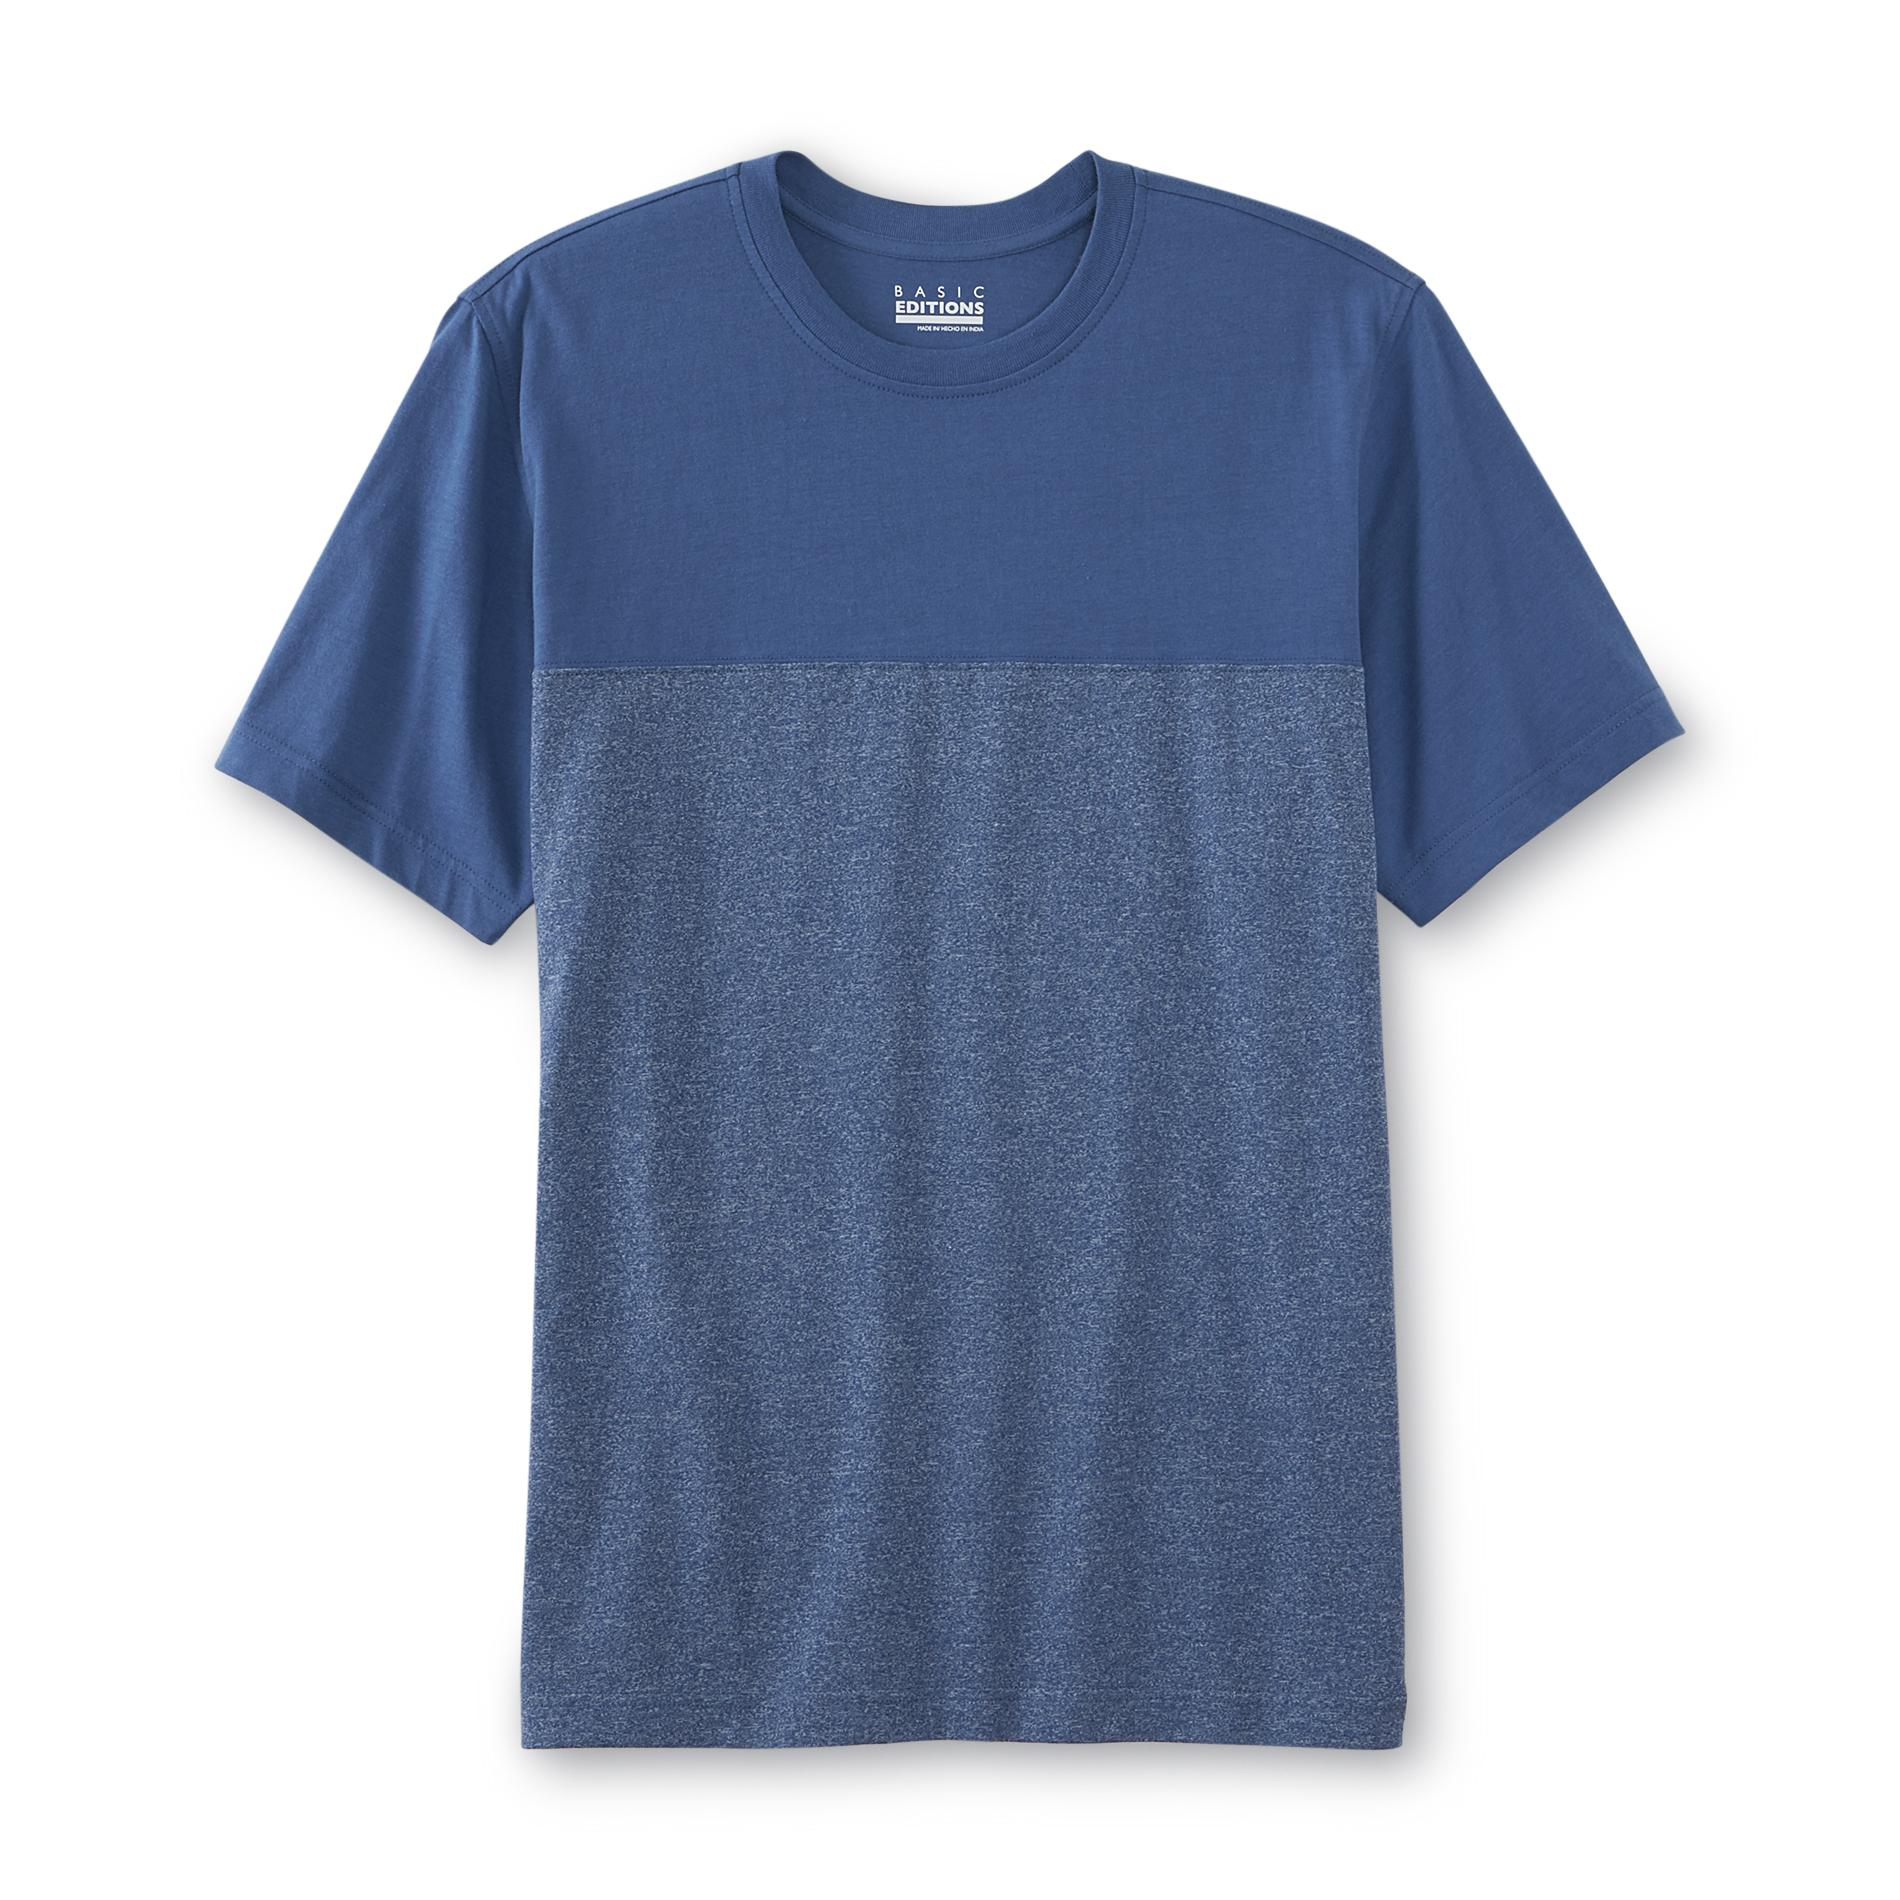 Basic Editions Men's Pieced T-Shirt